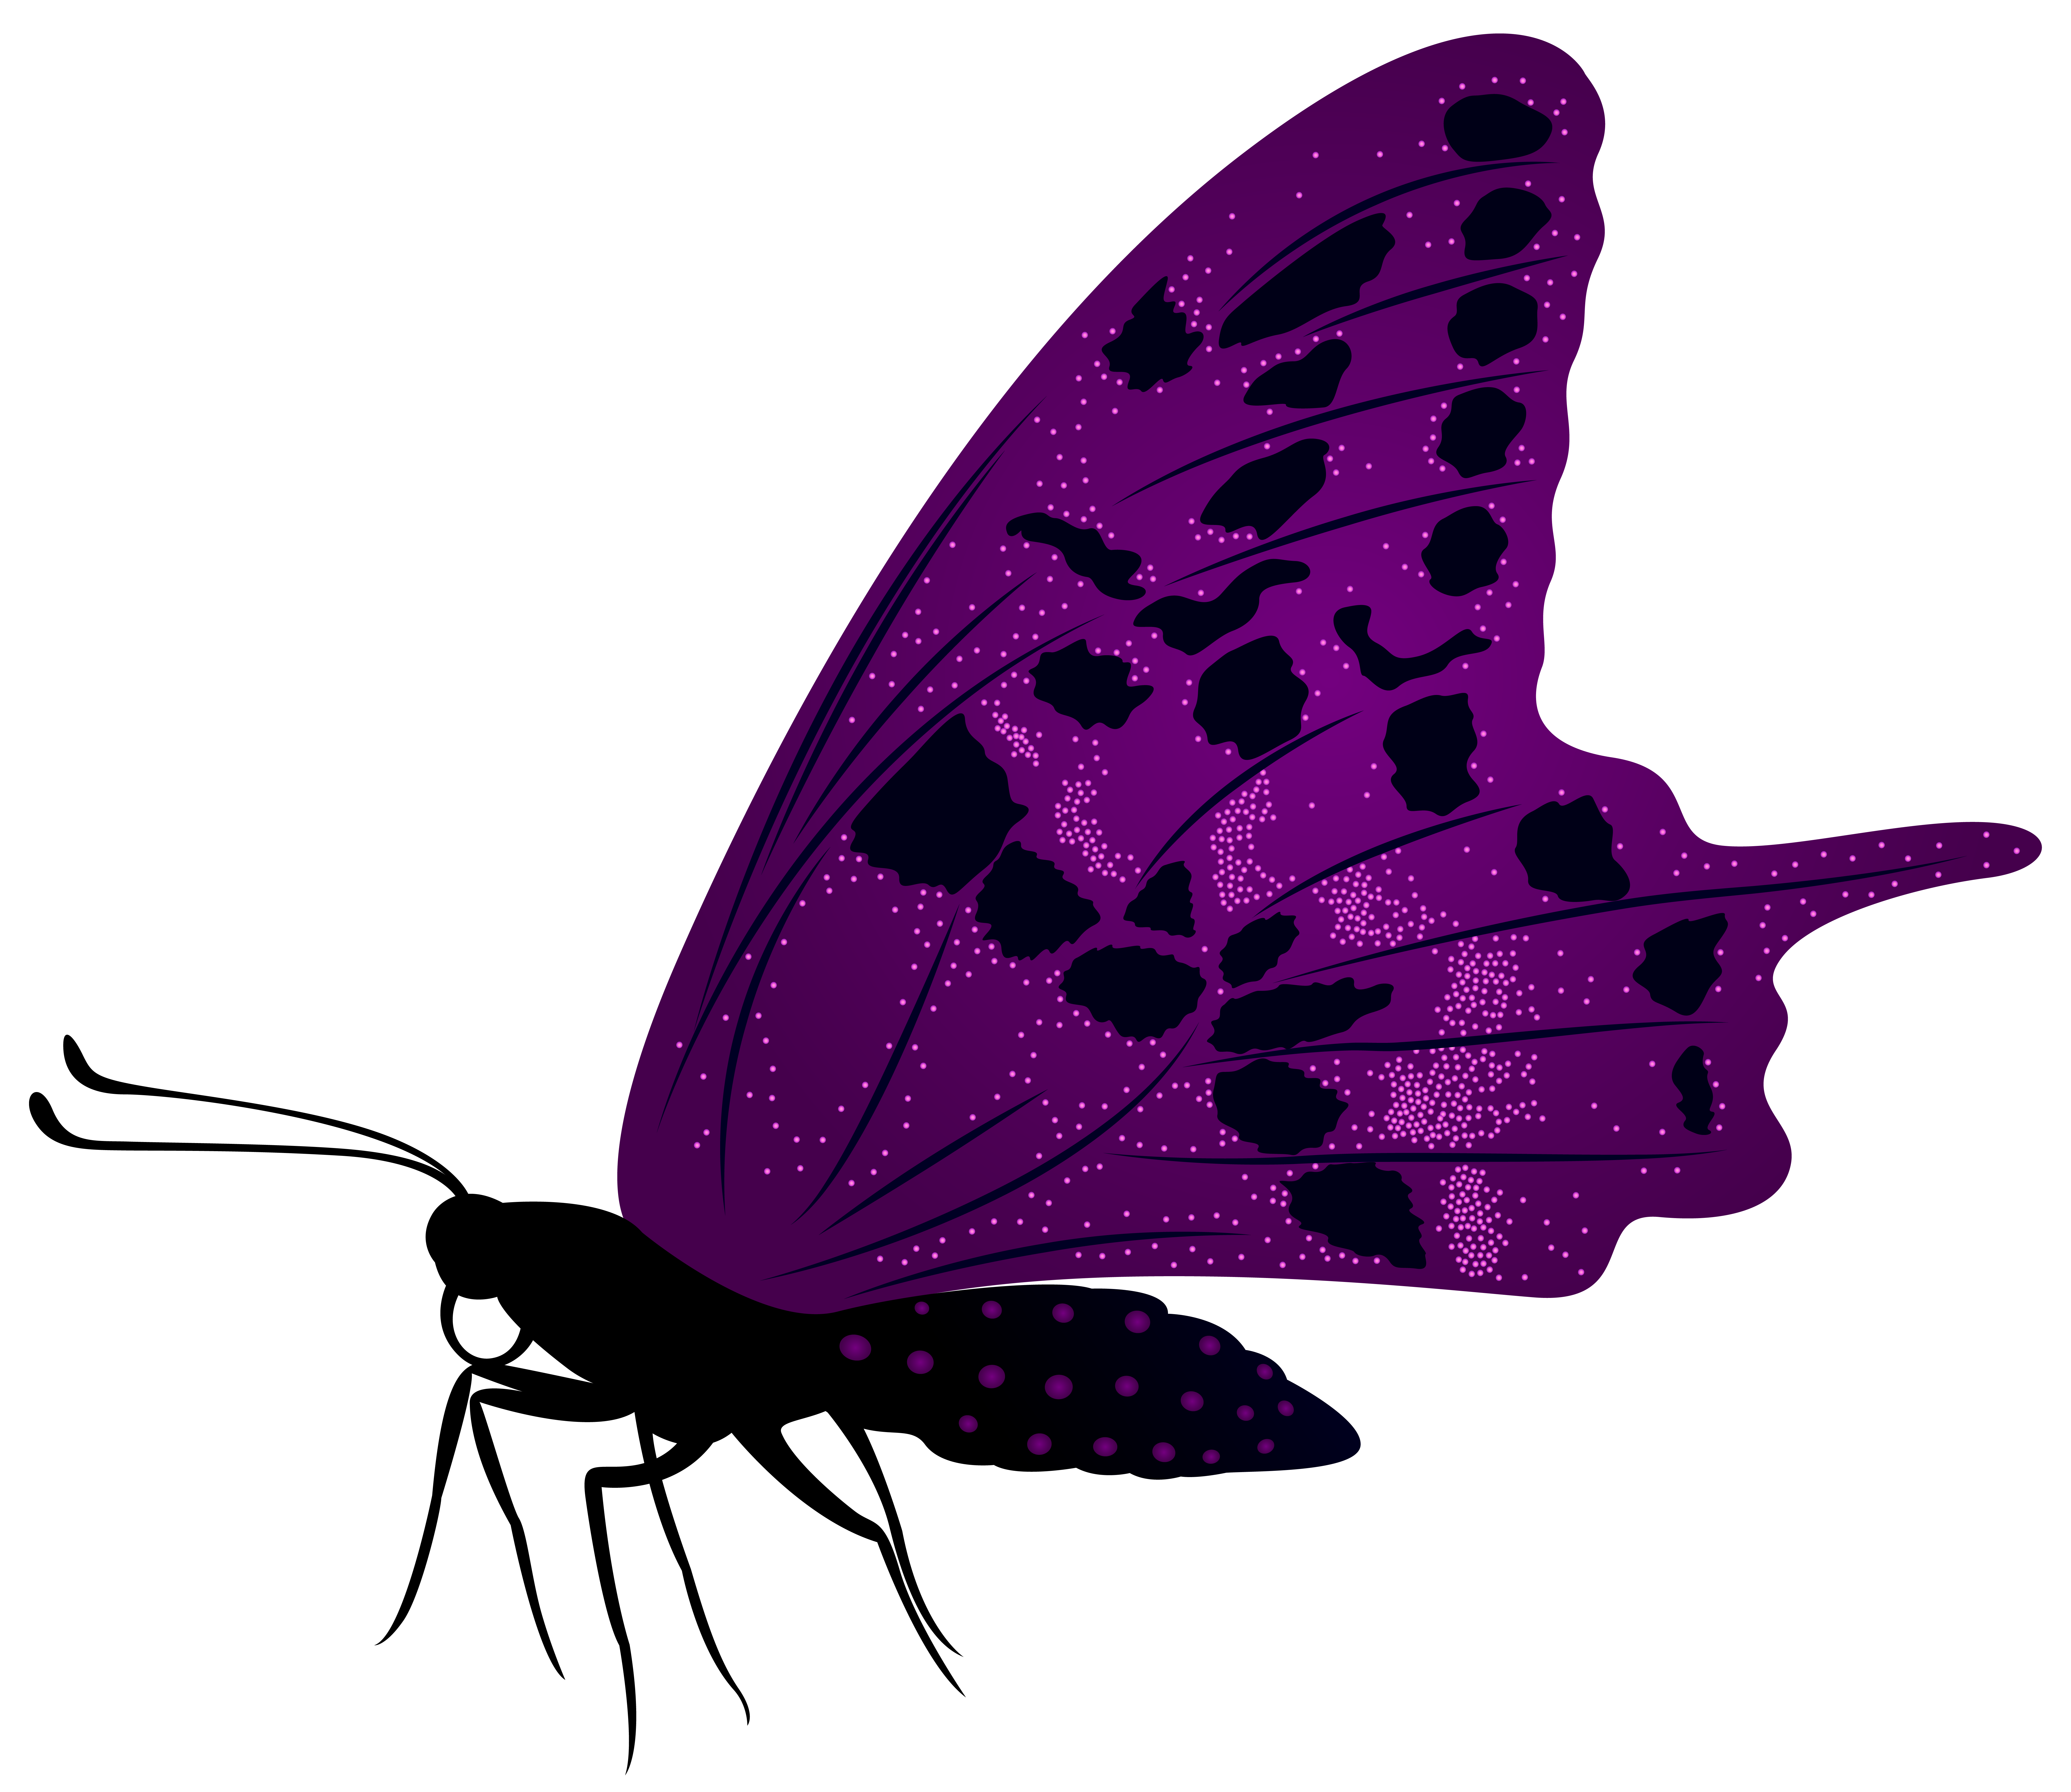 7917x6851 Large Purple Butterfly Png Clip Art Imageu200b Gallery Yopriceville